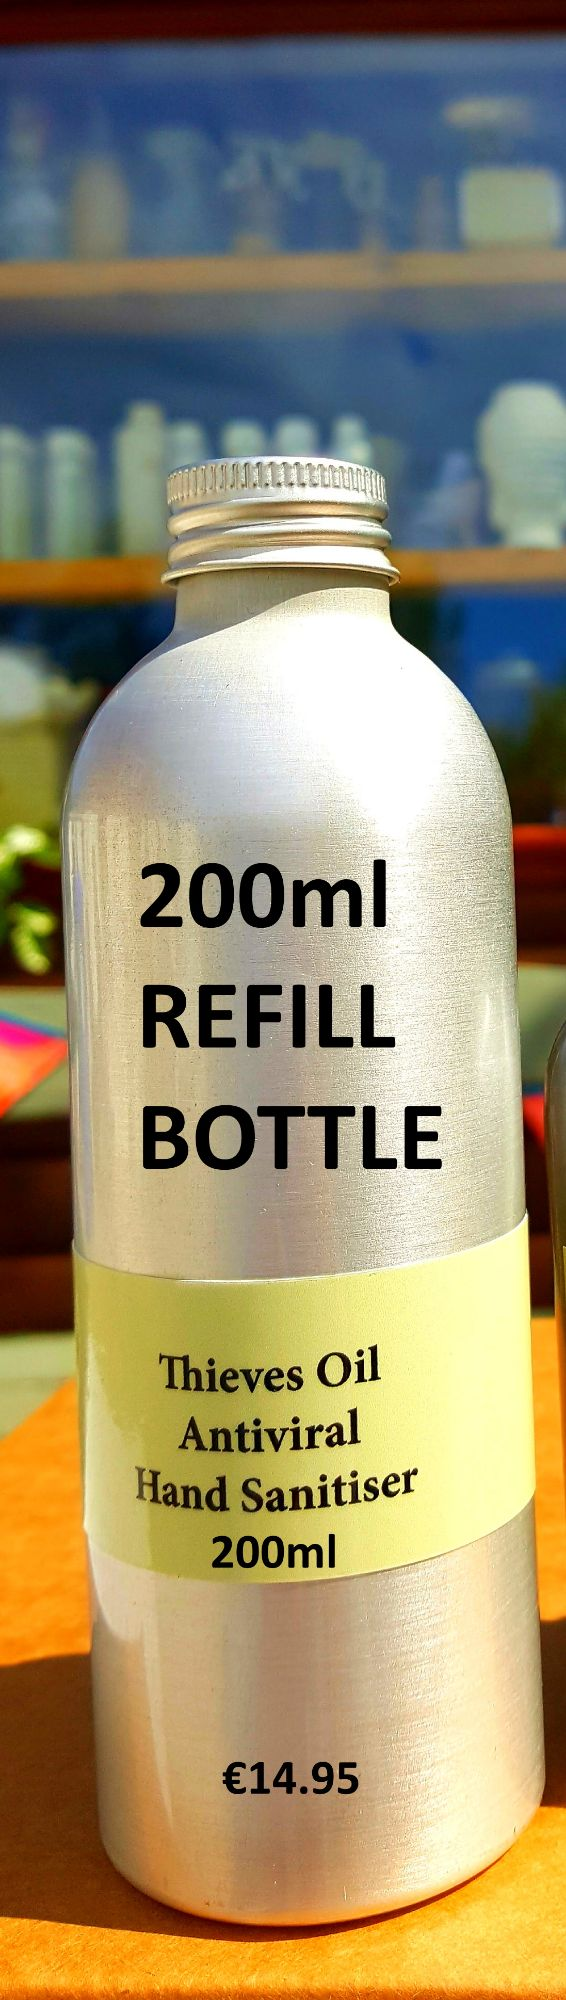 200ml REFILL BOTTLE ANTIVIRAL HAND SANITISER